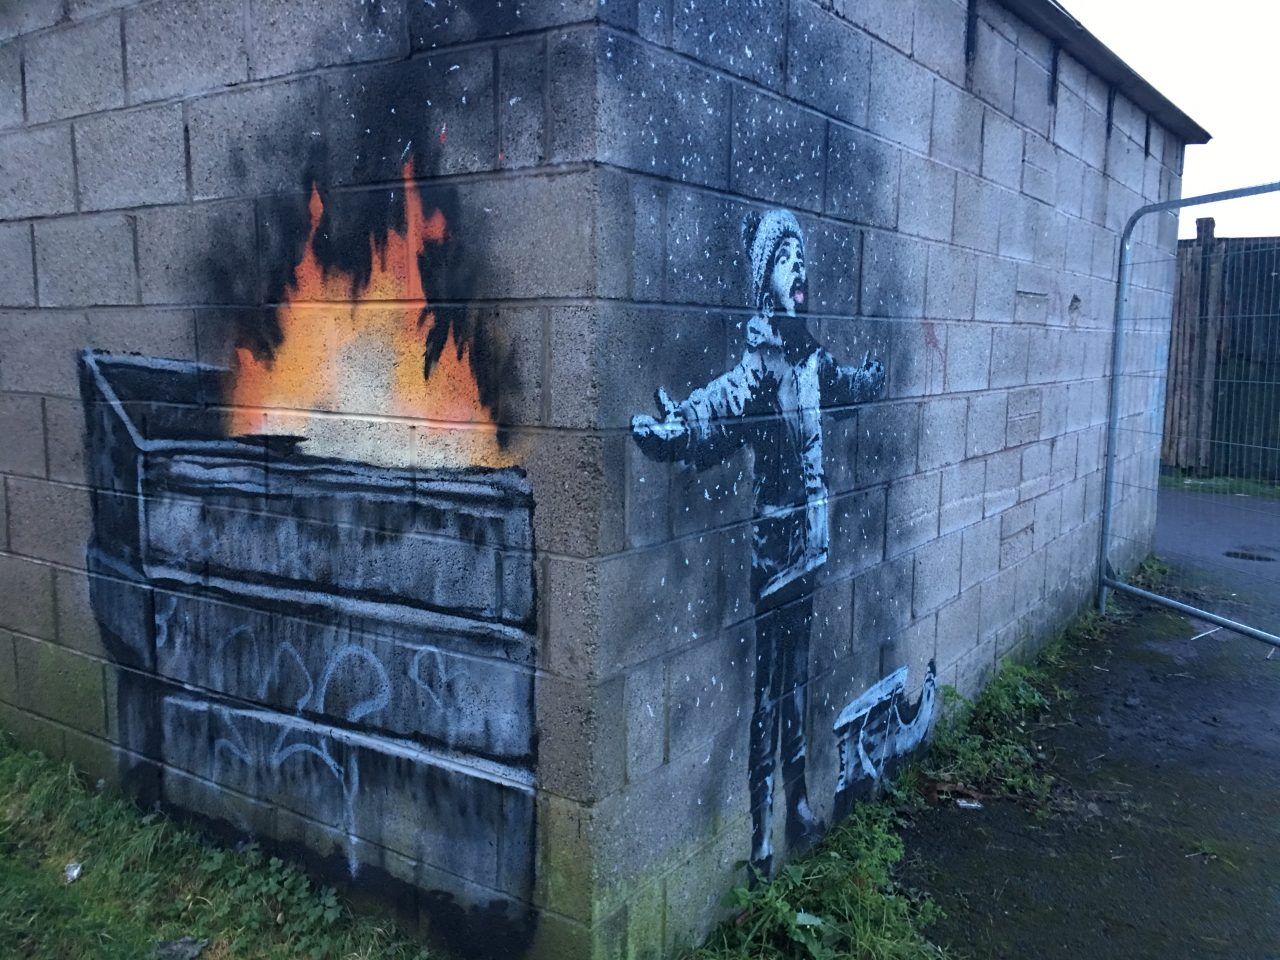 https://www.artsandcollections.com/wp-content/uploads/2019/05/Banksy-Seasons-Greetings-image-from-Wikimedia-Commons-1280x960.jpg